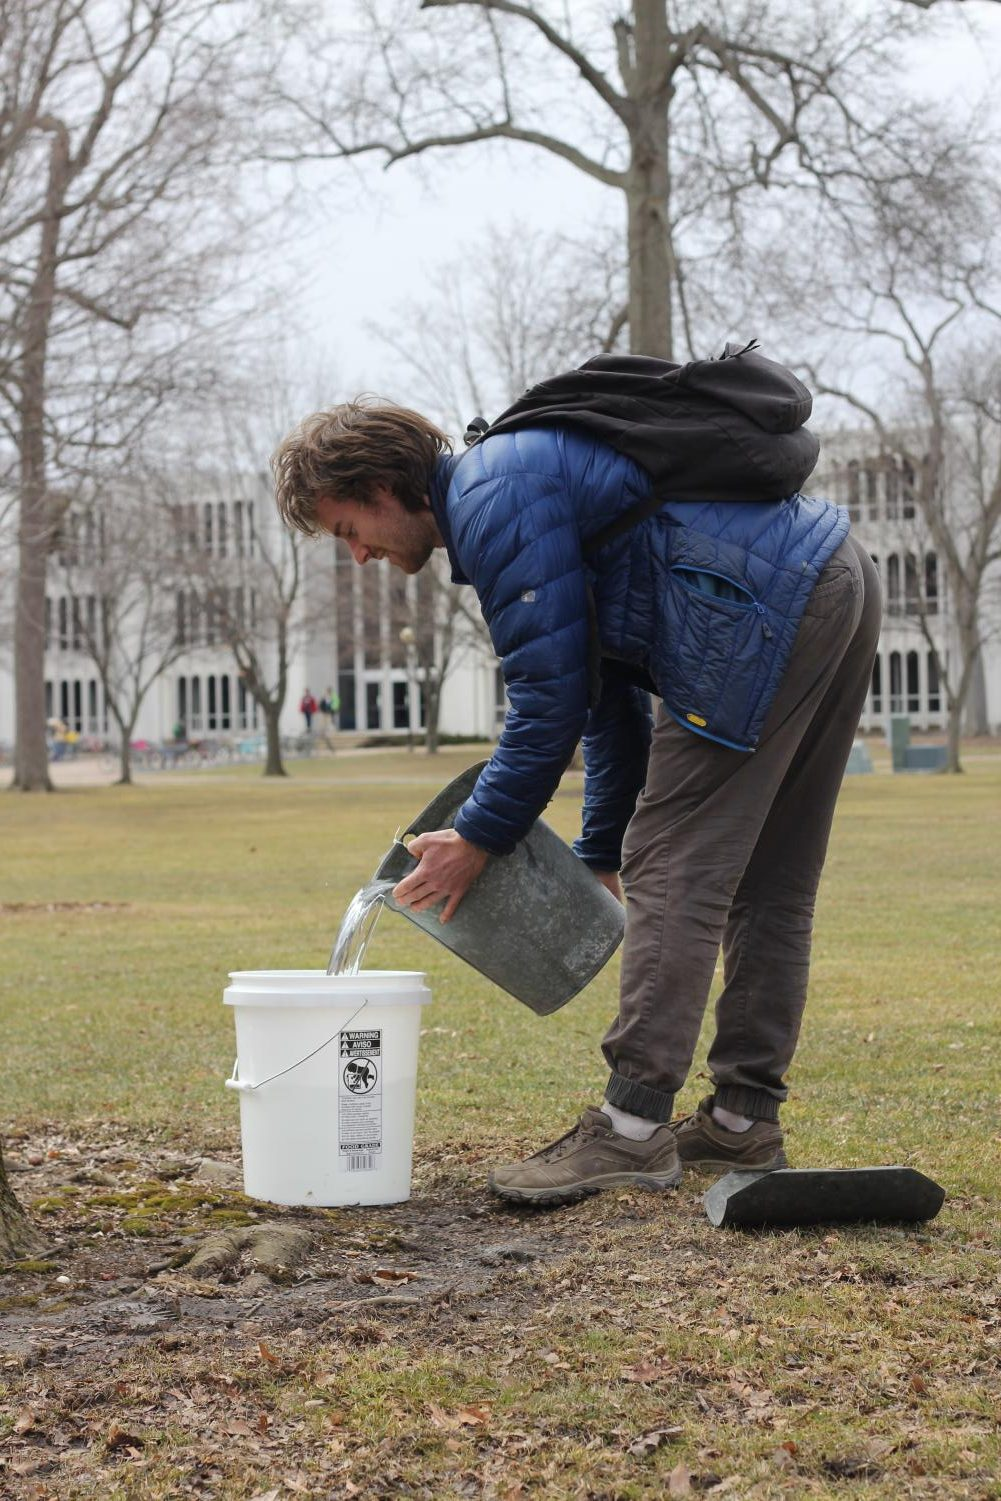 Will Wickham prepares materials for tapping trees in Tappan Square. The sap they collect will be boiled into maple syrup.